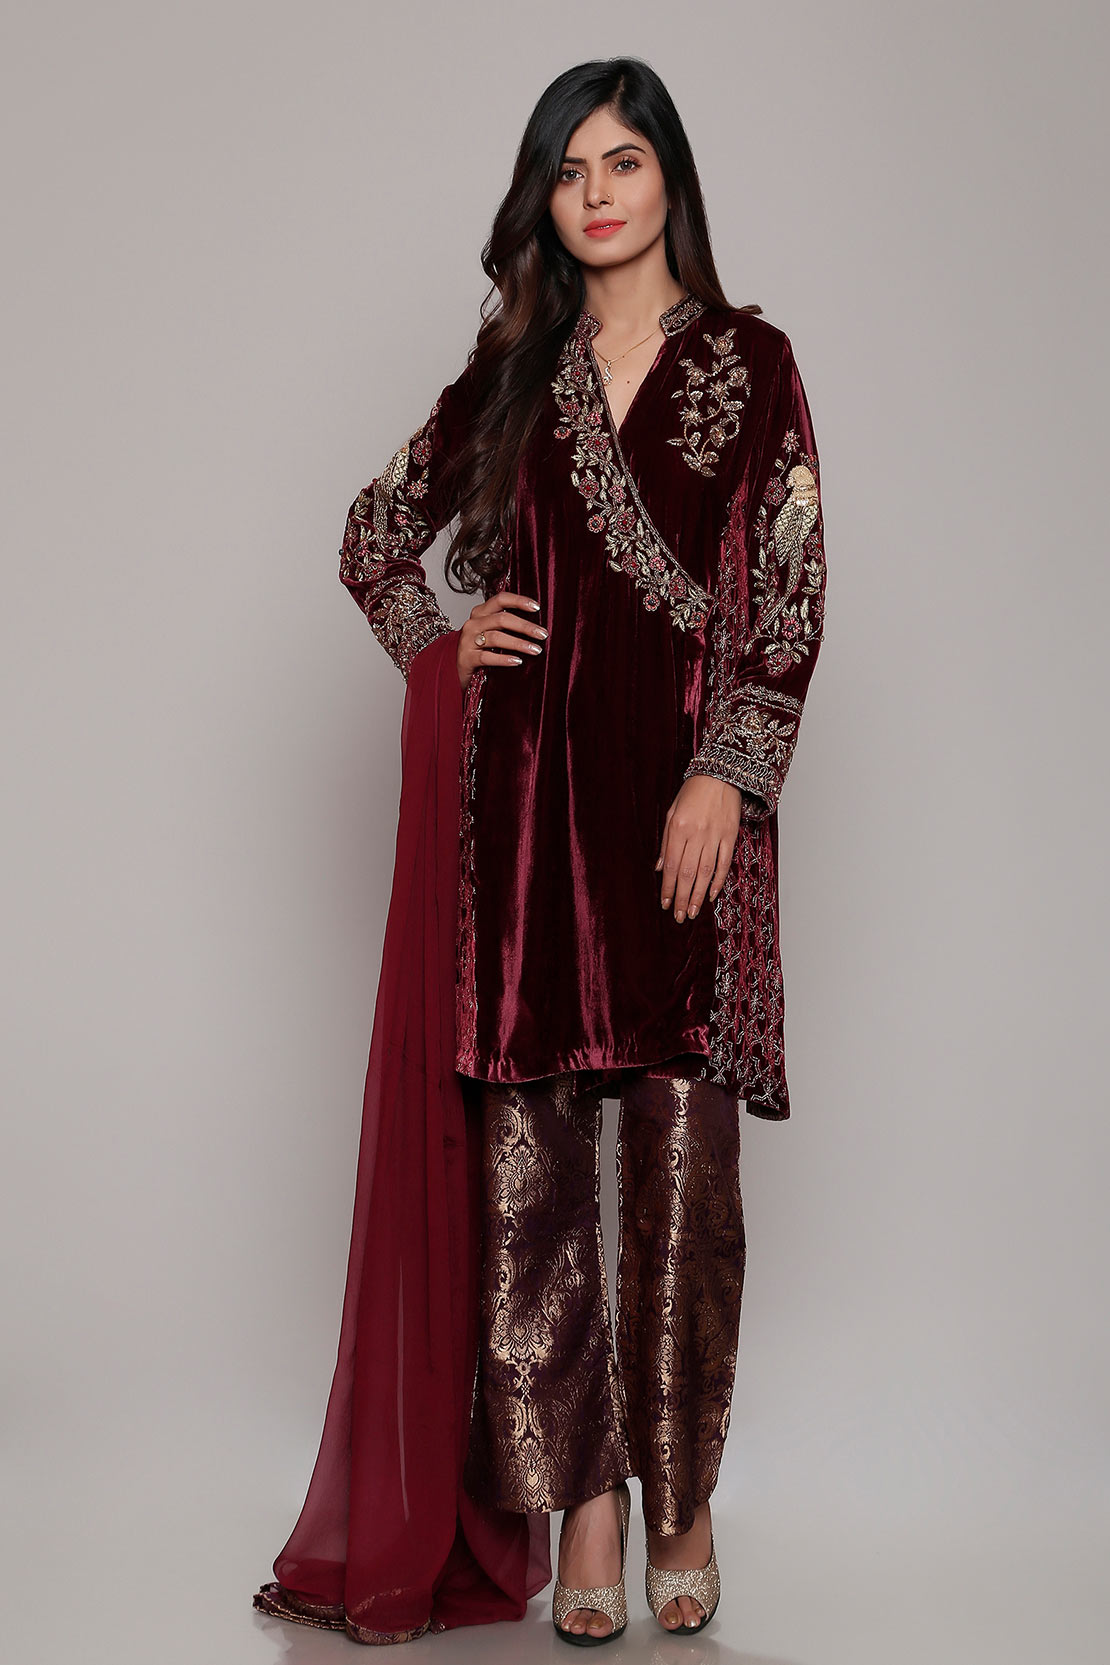 254300cb7f5 Today we are sharing the Latest Women Best Winter Dresses Designs  Collection 2018 by Famous Pakistani Brands.